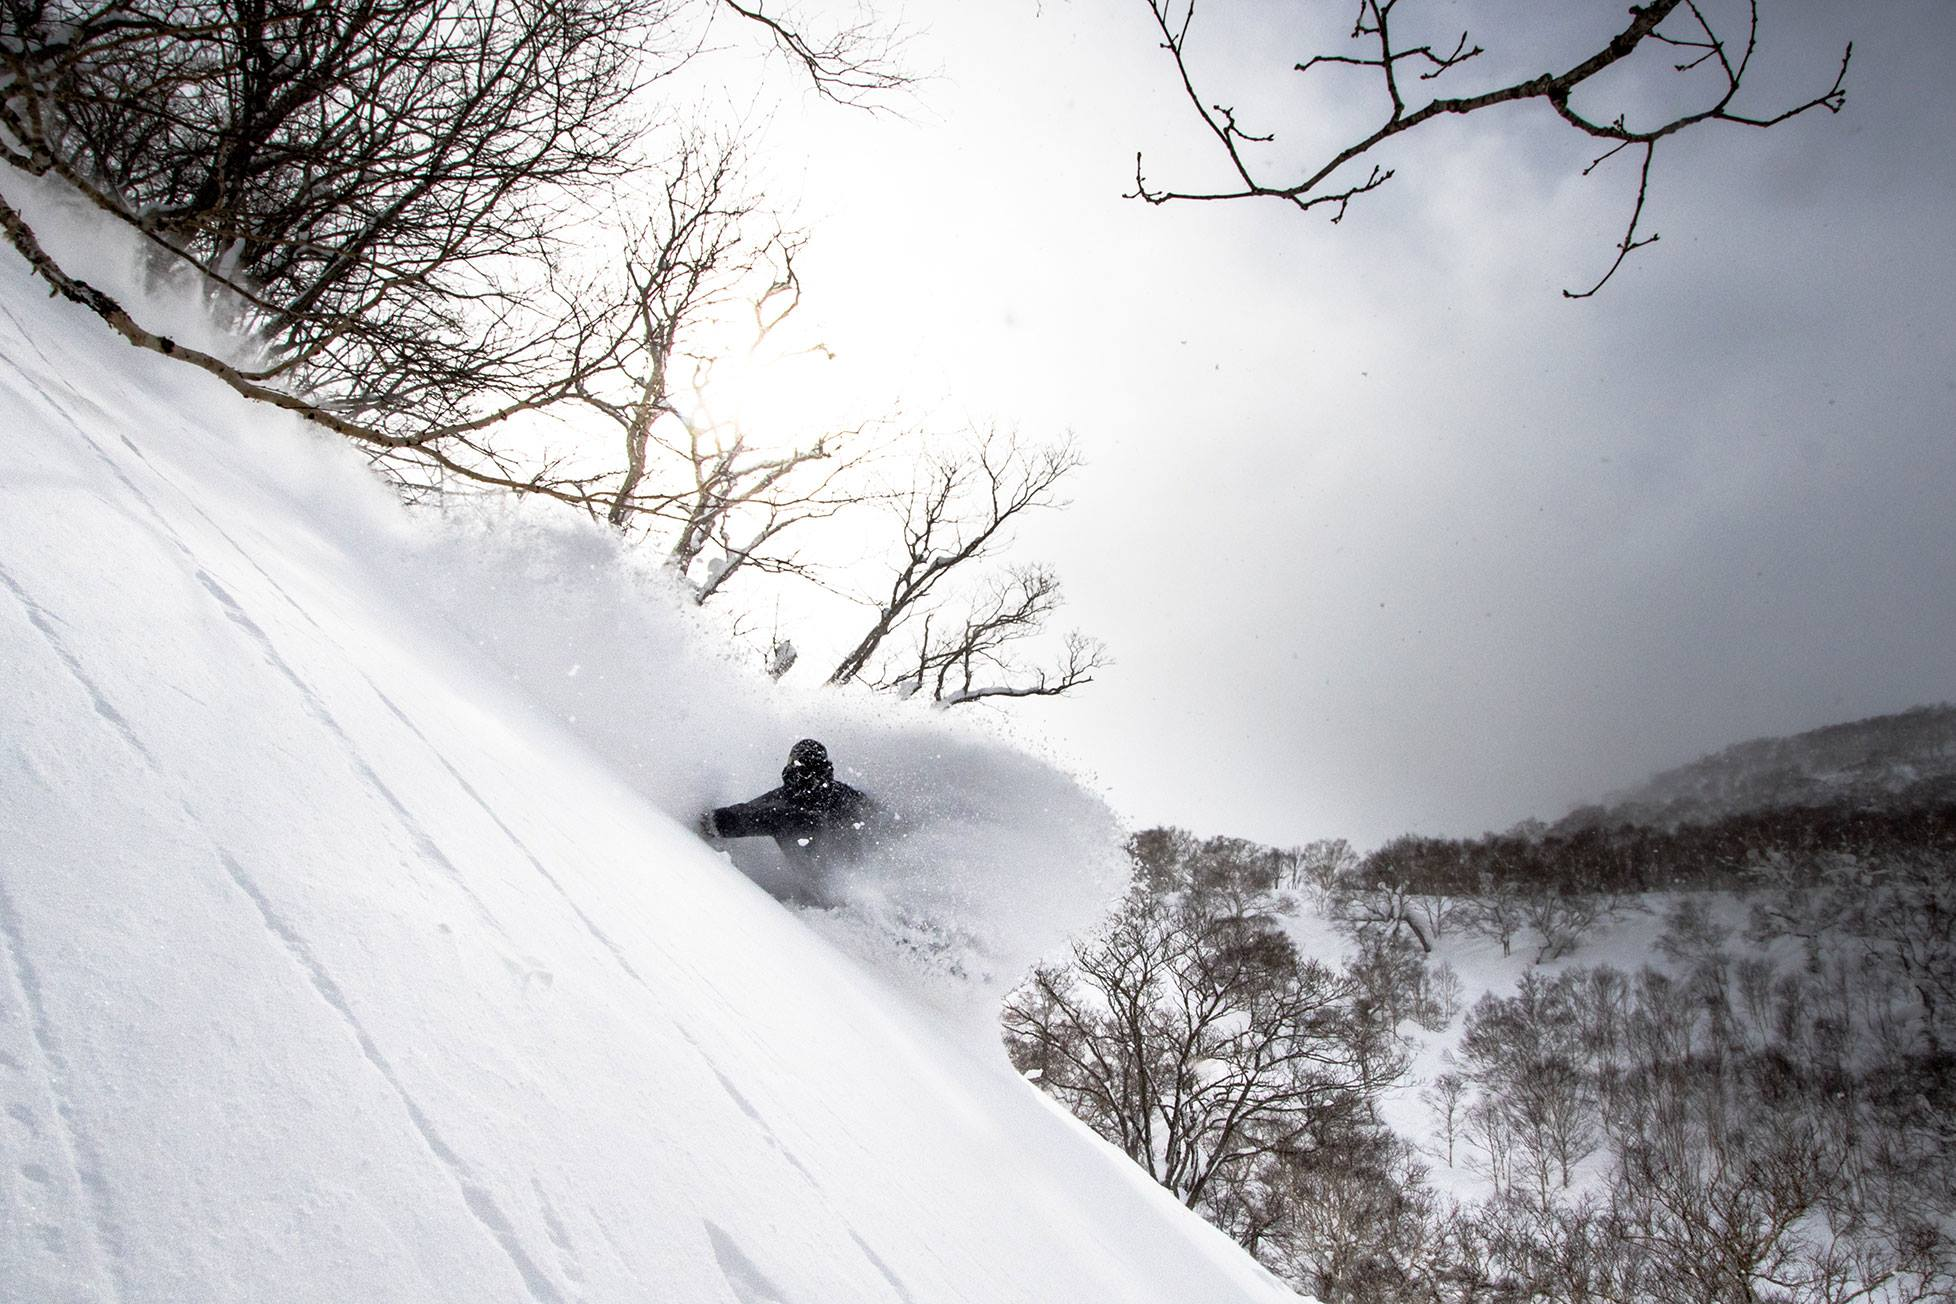 snowboarding powder in hakuba First Tours